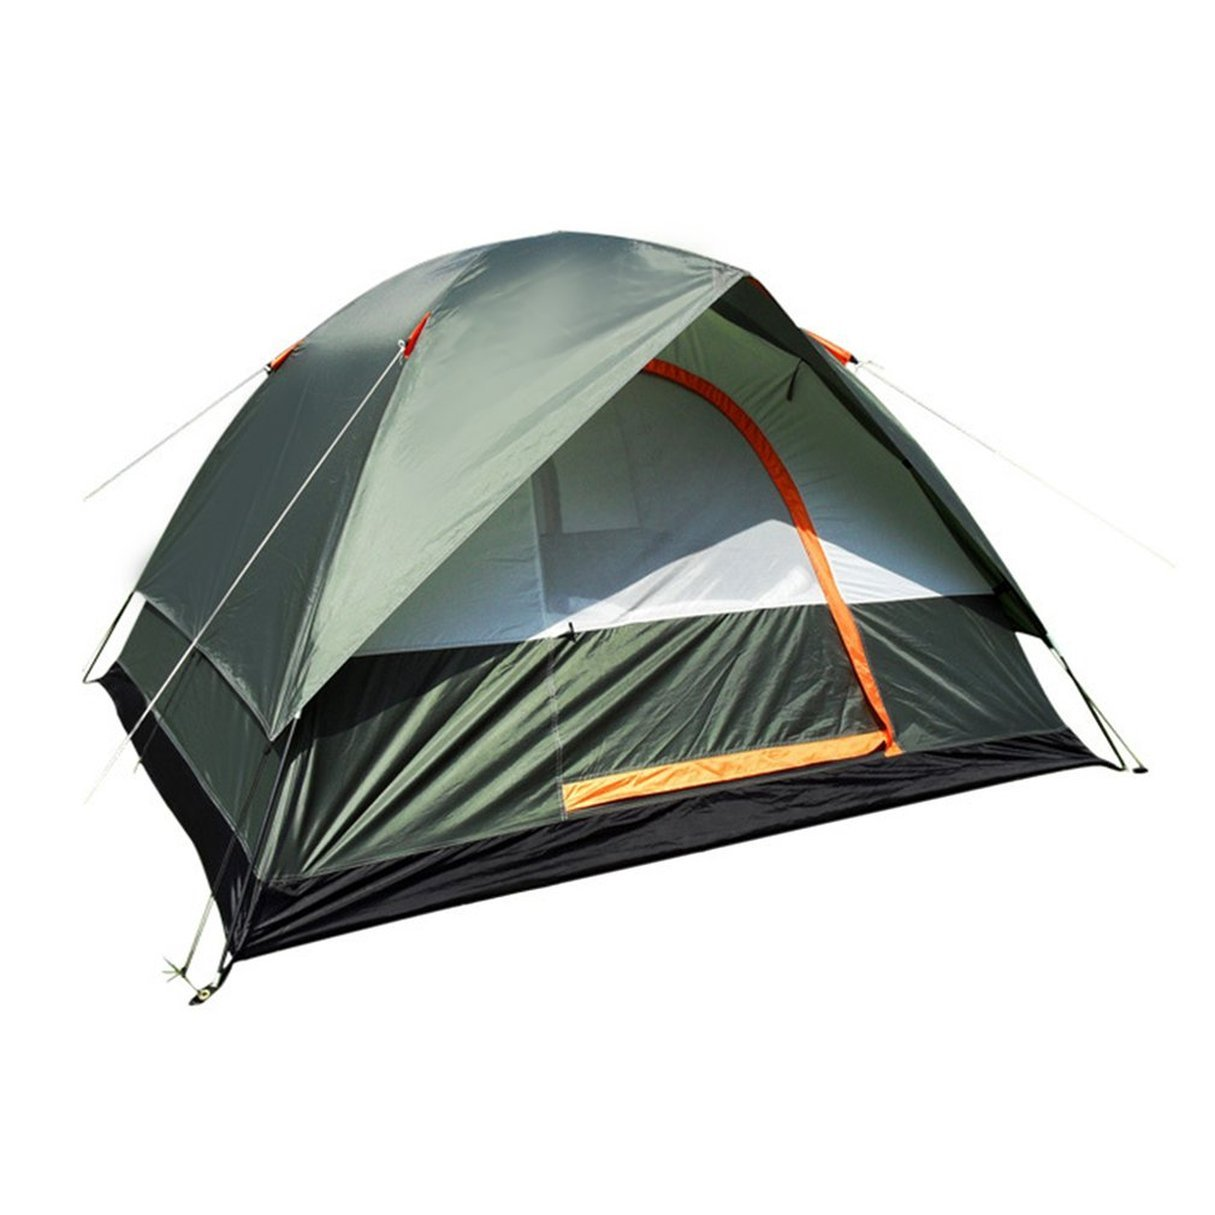 Waterproof Outdoor Camping Hiking Polyester Oxford Cloth Double Layers Tent Portable 4 Persons Travel Climbing Tent